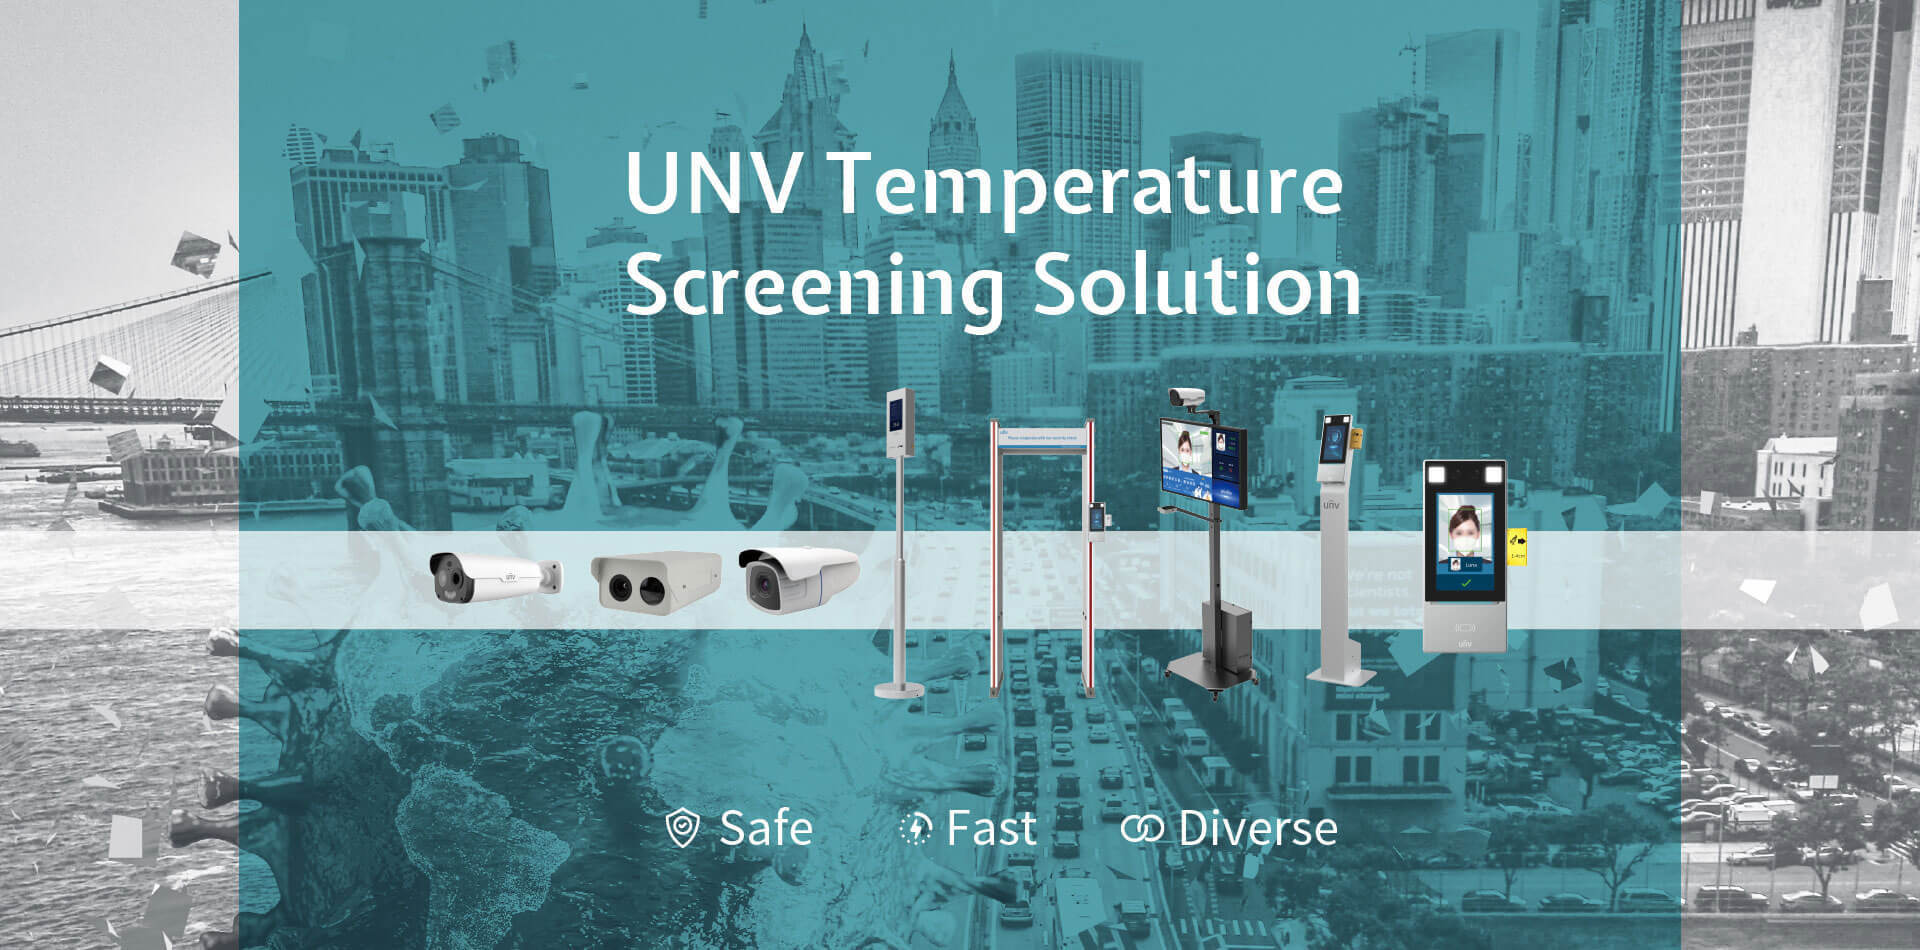 UNV Temperature Screening Solution